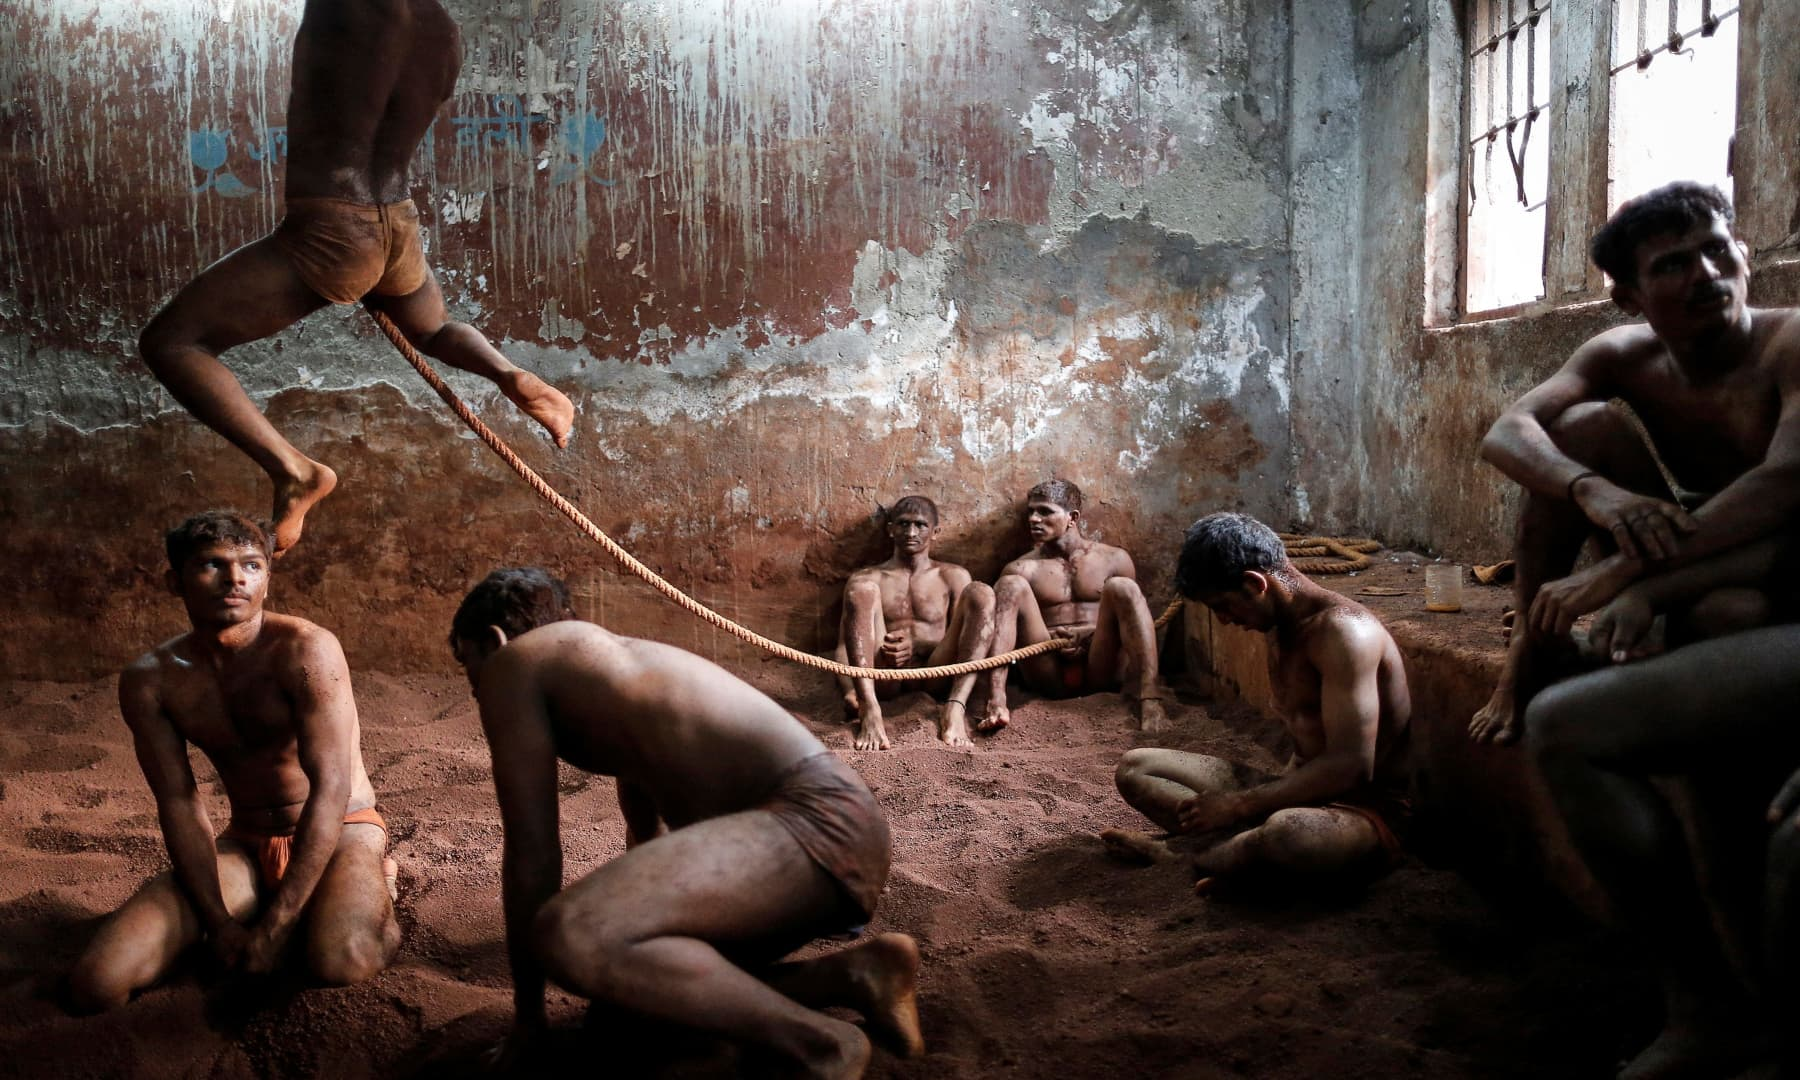 Wrestlers practise as others rest in the mud at a traditional Indian wrestling centre called Akhaara in Mumbai, March 4, 2014. — Reuters/Danish Siddiqui